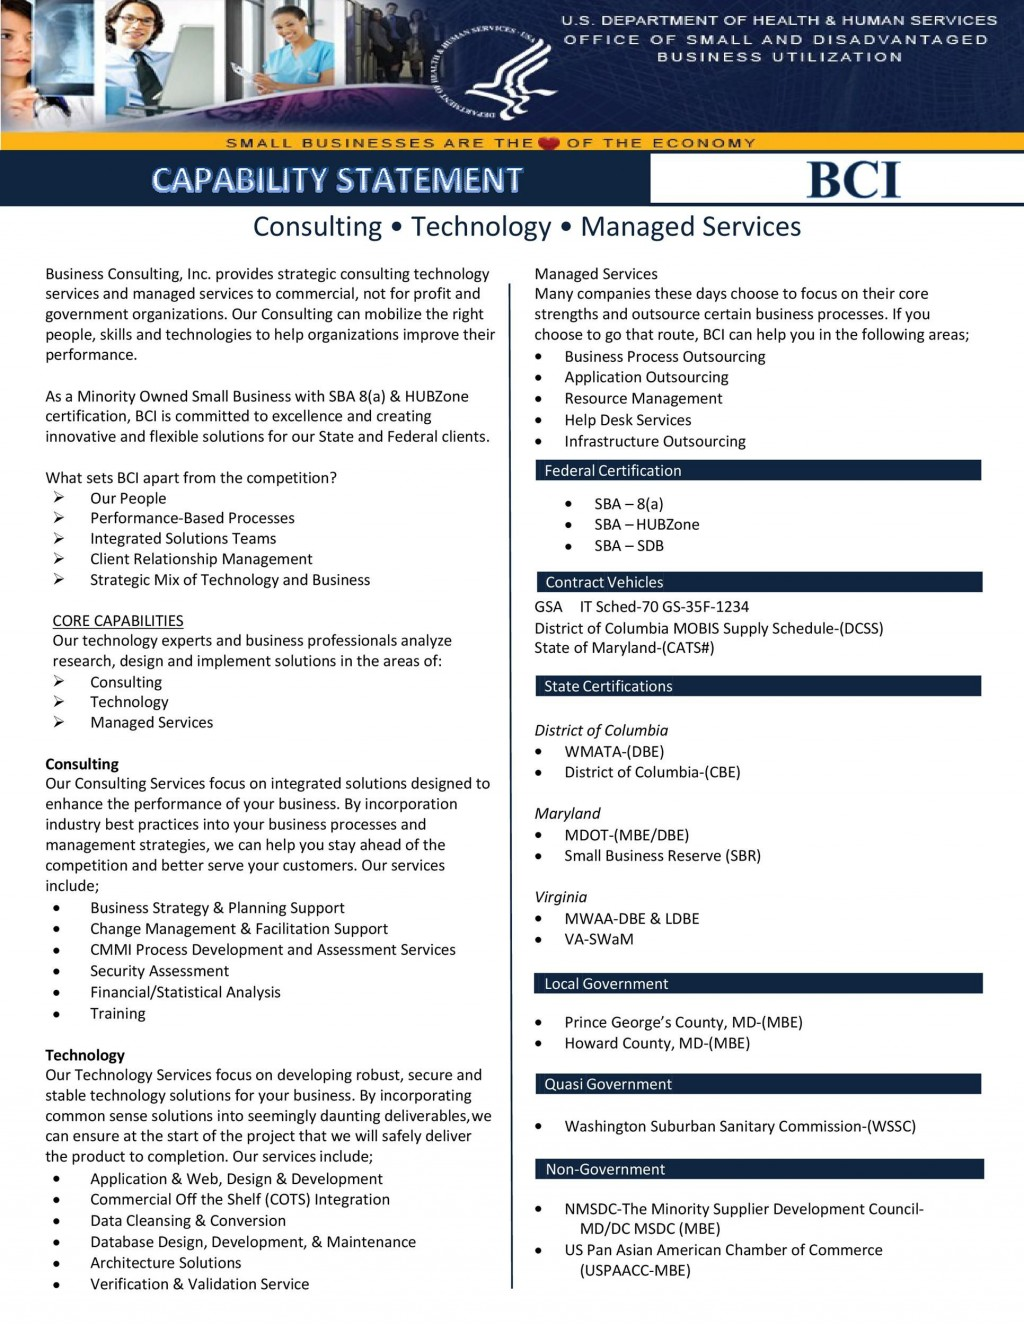 007 Dreaded Capability Statement Template Word Doc Example  Document FreeLarge